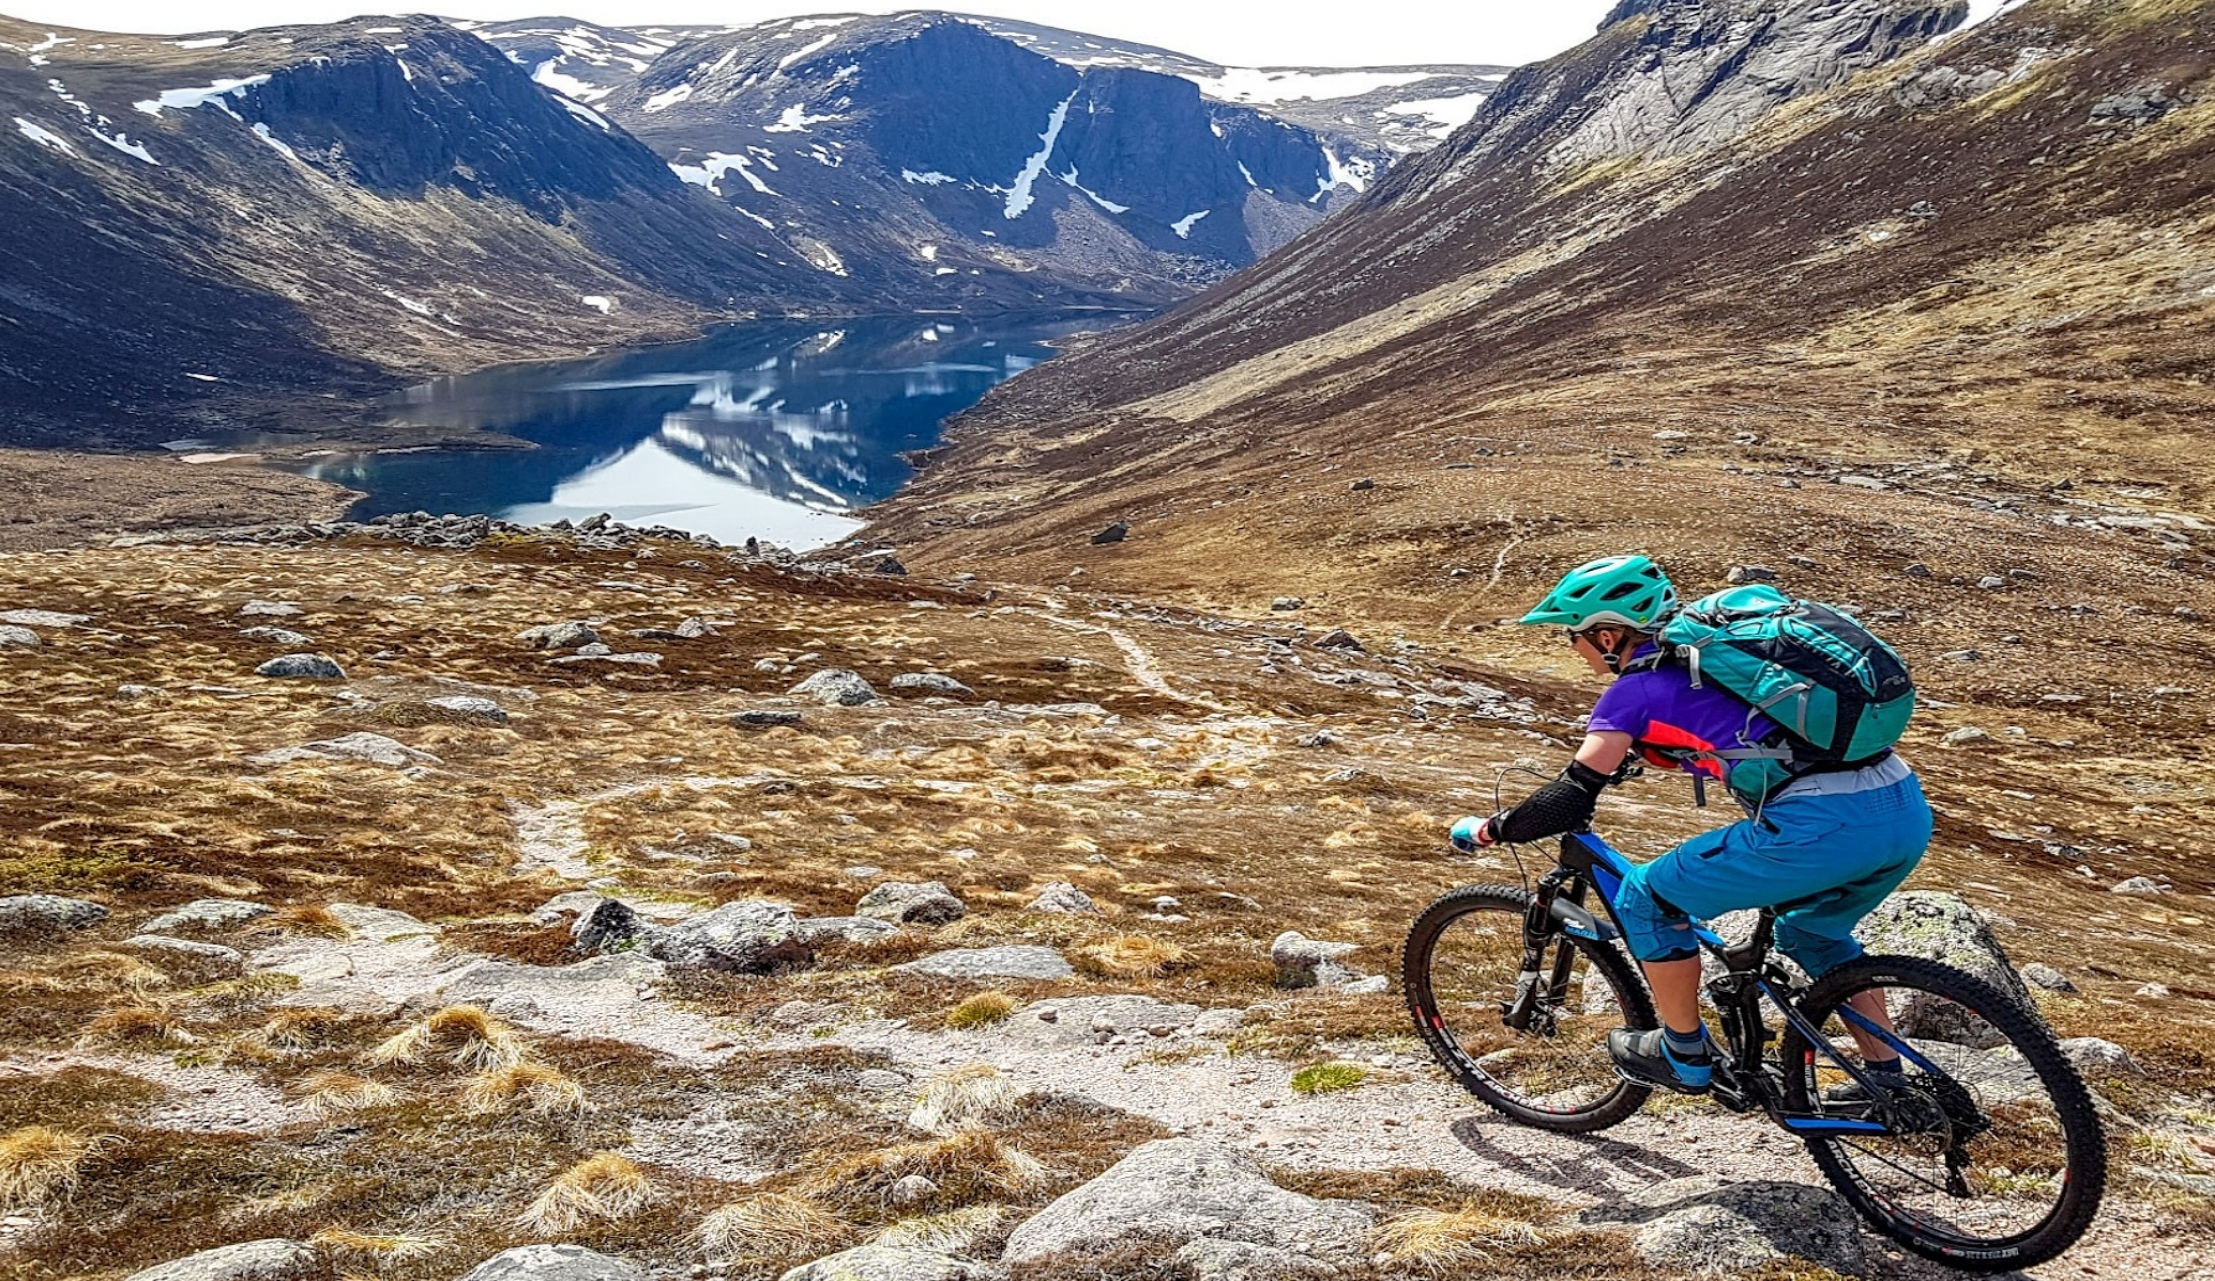 cairngorm mountain bike descent